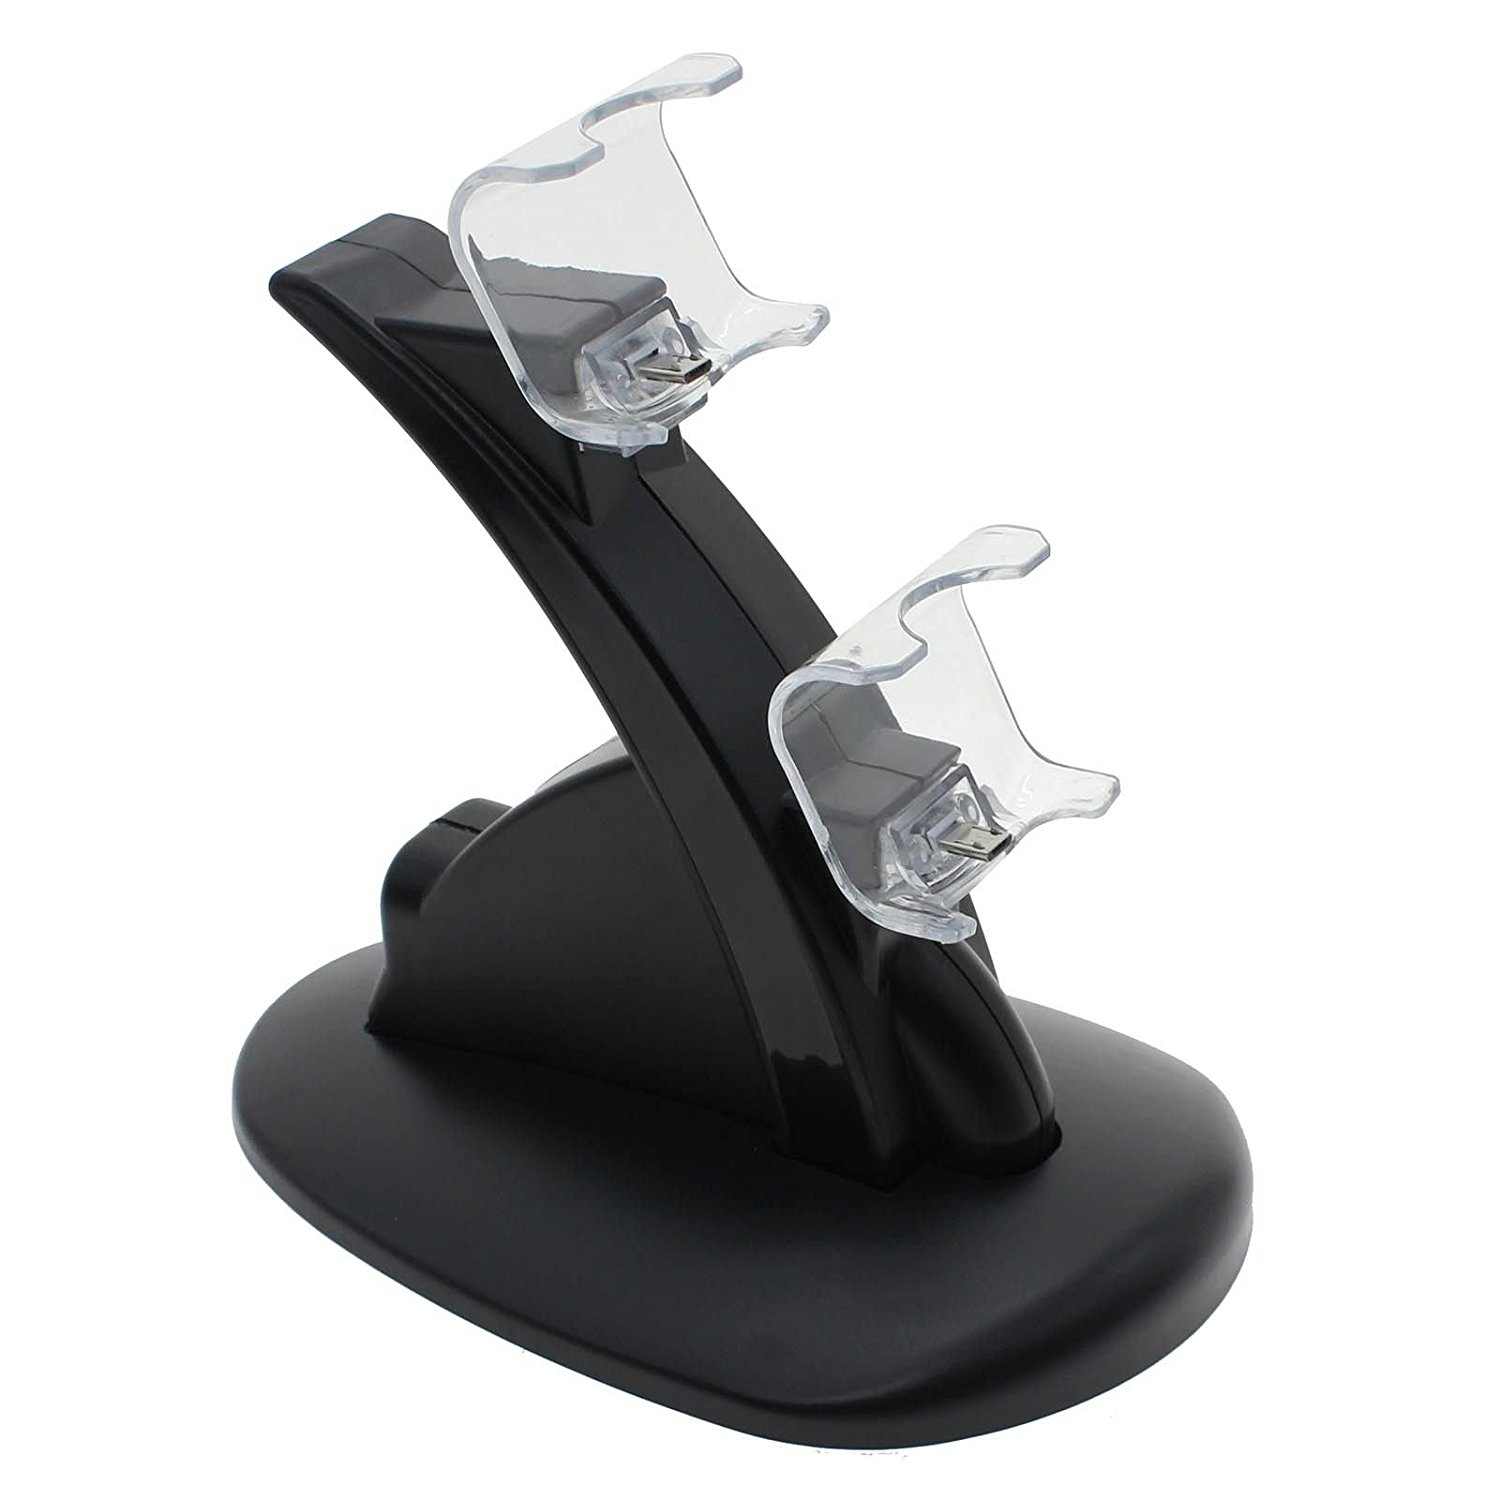 1Pc LED Dual USB Controller Charger Charging Stand Station Dock for PS4 Dualshock